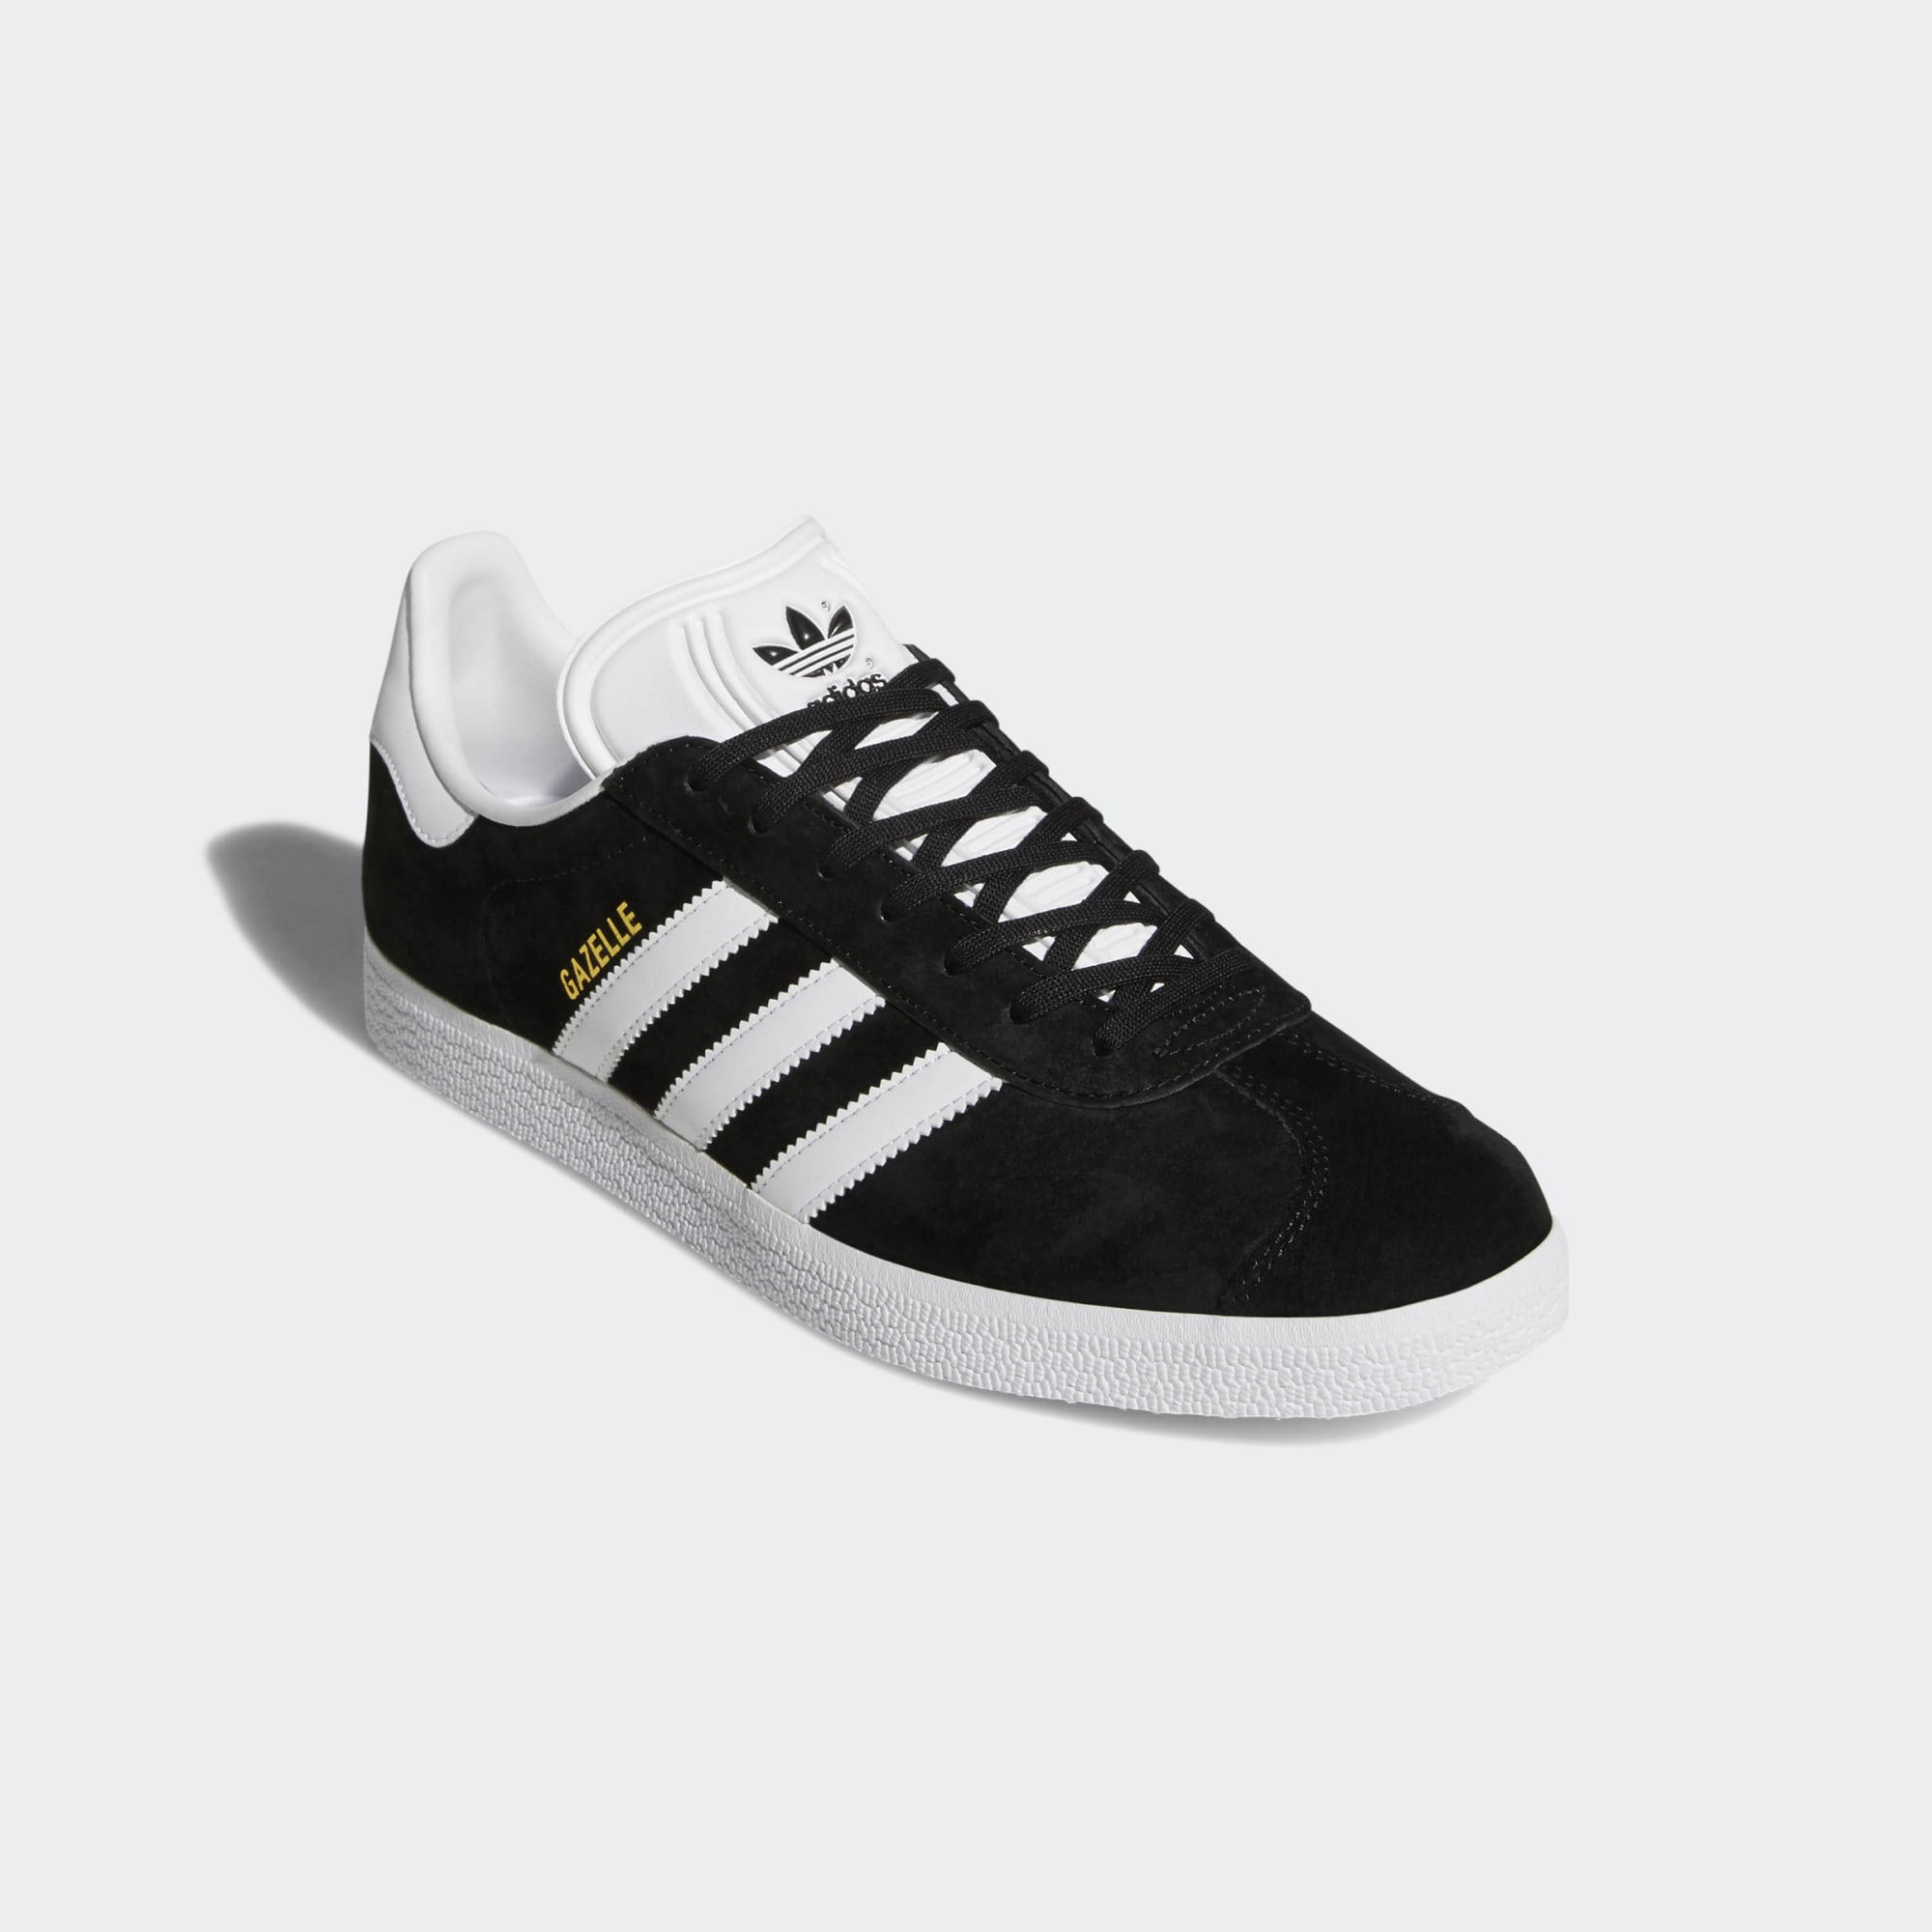 This sneaker is made with the same materials, colours and slightly wider proportions as the 1991 version.